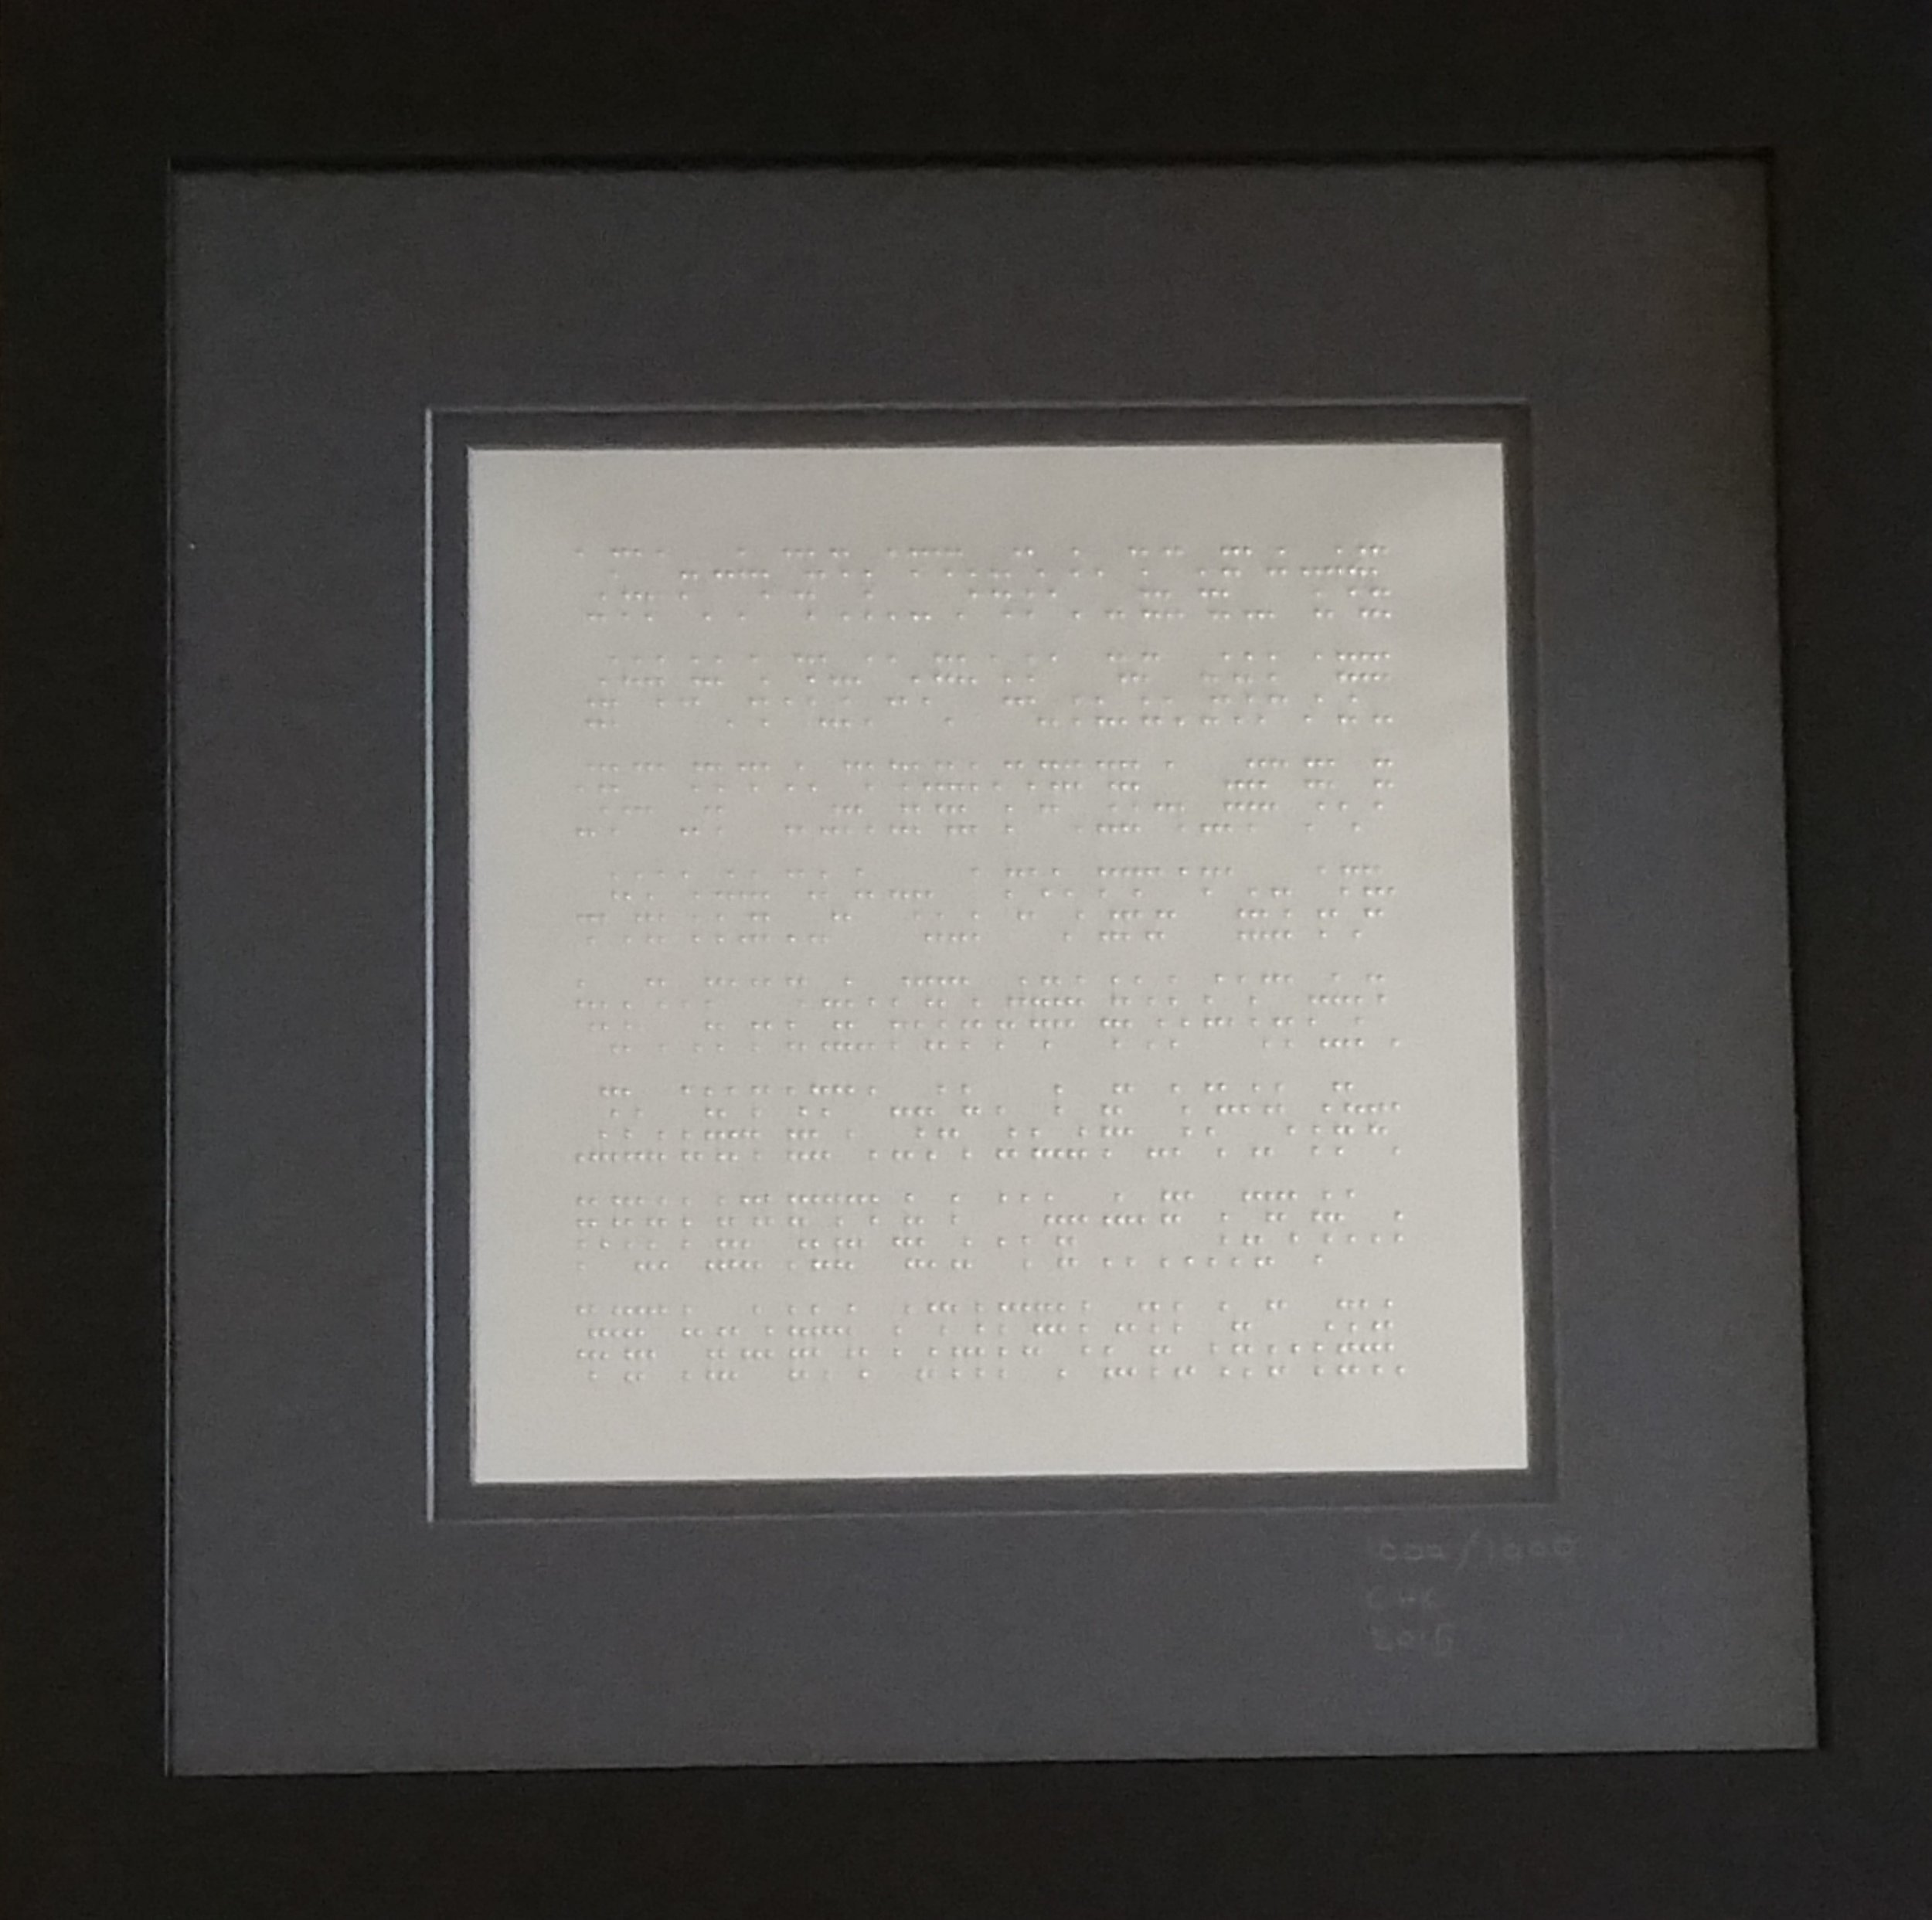 """2015. 8 Framed and Hammered Sheets of Stainless Steel 8 x 12"""" x 12"""" (frame dimensions)."""